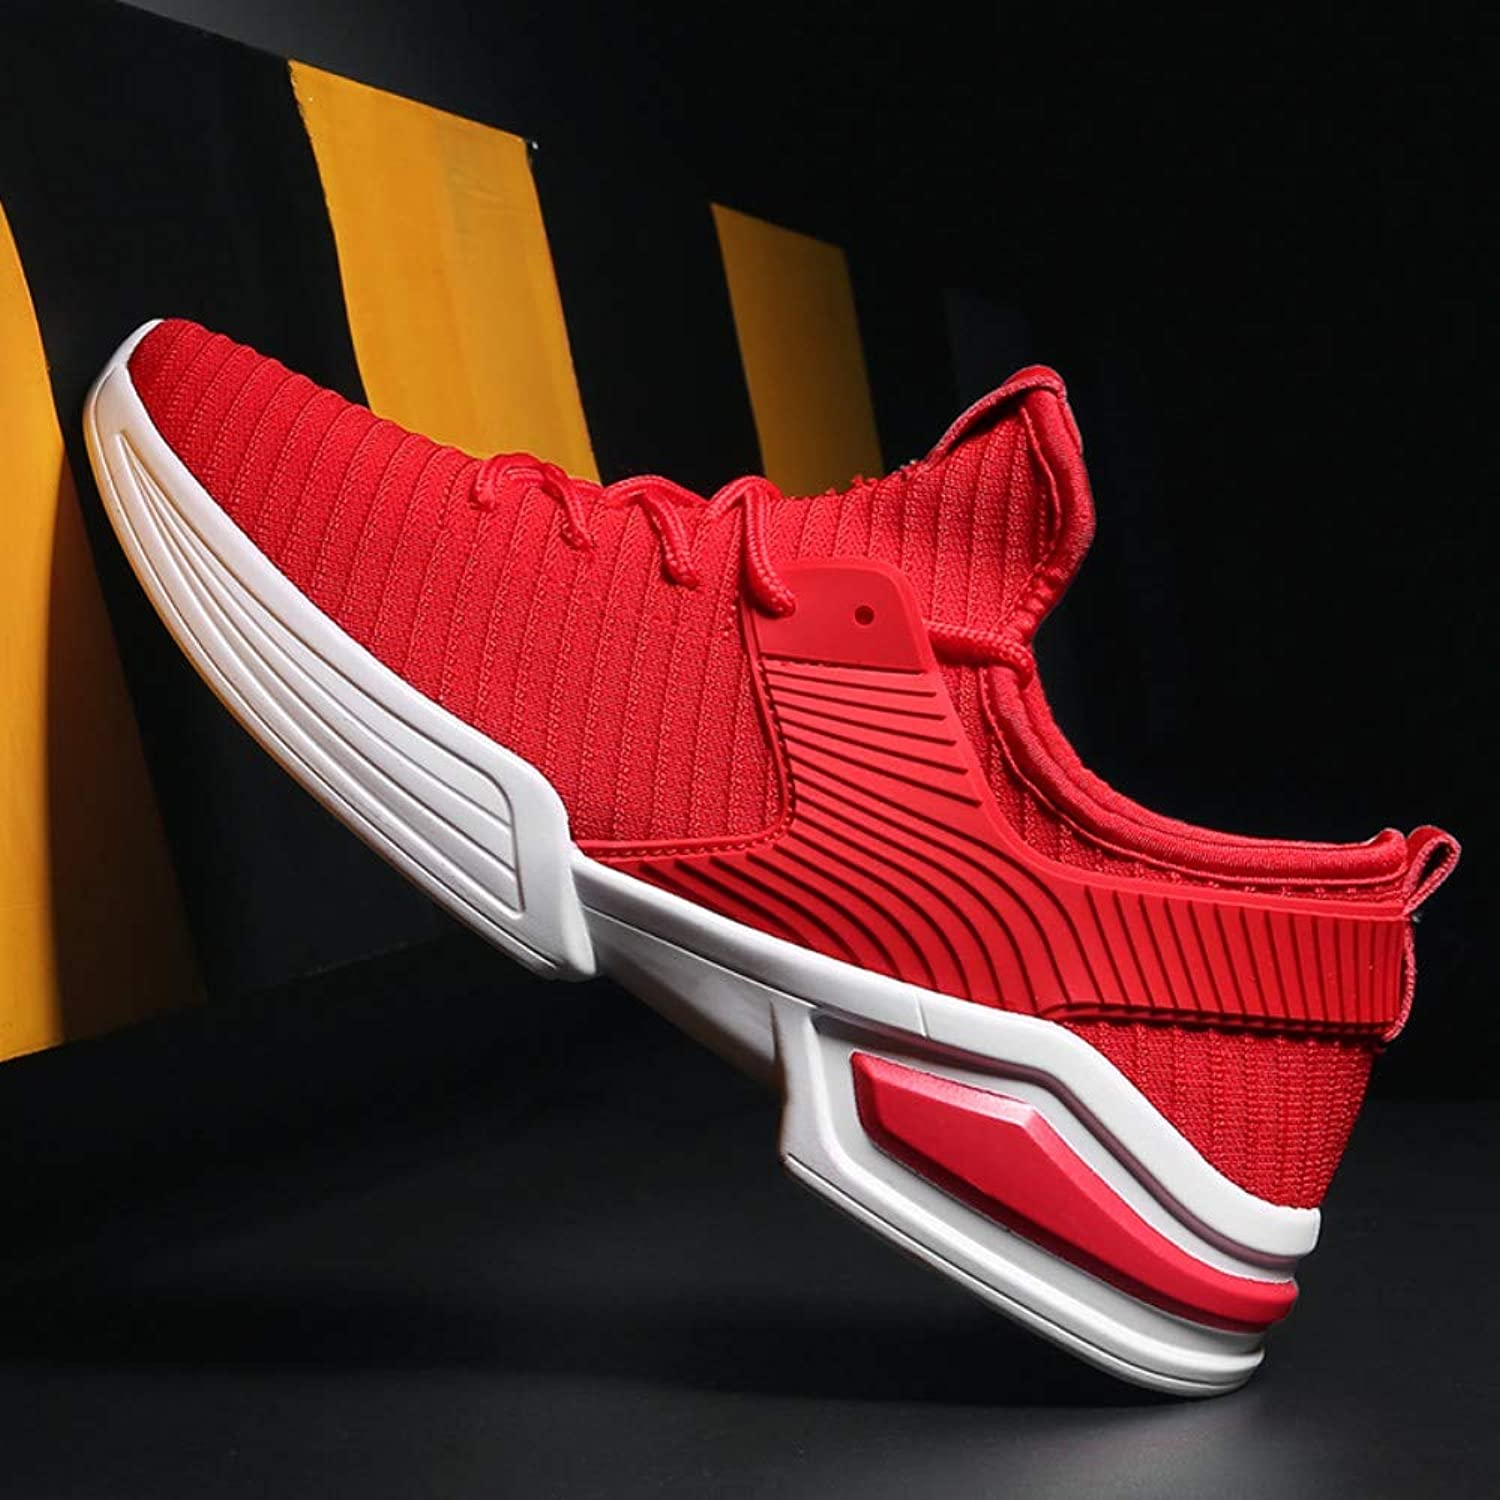 YYAMO shoes Men Sport shoes Tide Couple shoes Casual shoes Riding Travel Gym Jogging Walking Outdoor Products Running Red